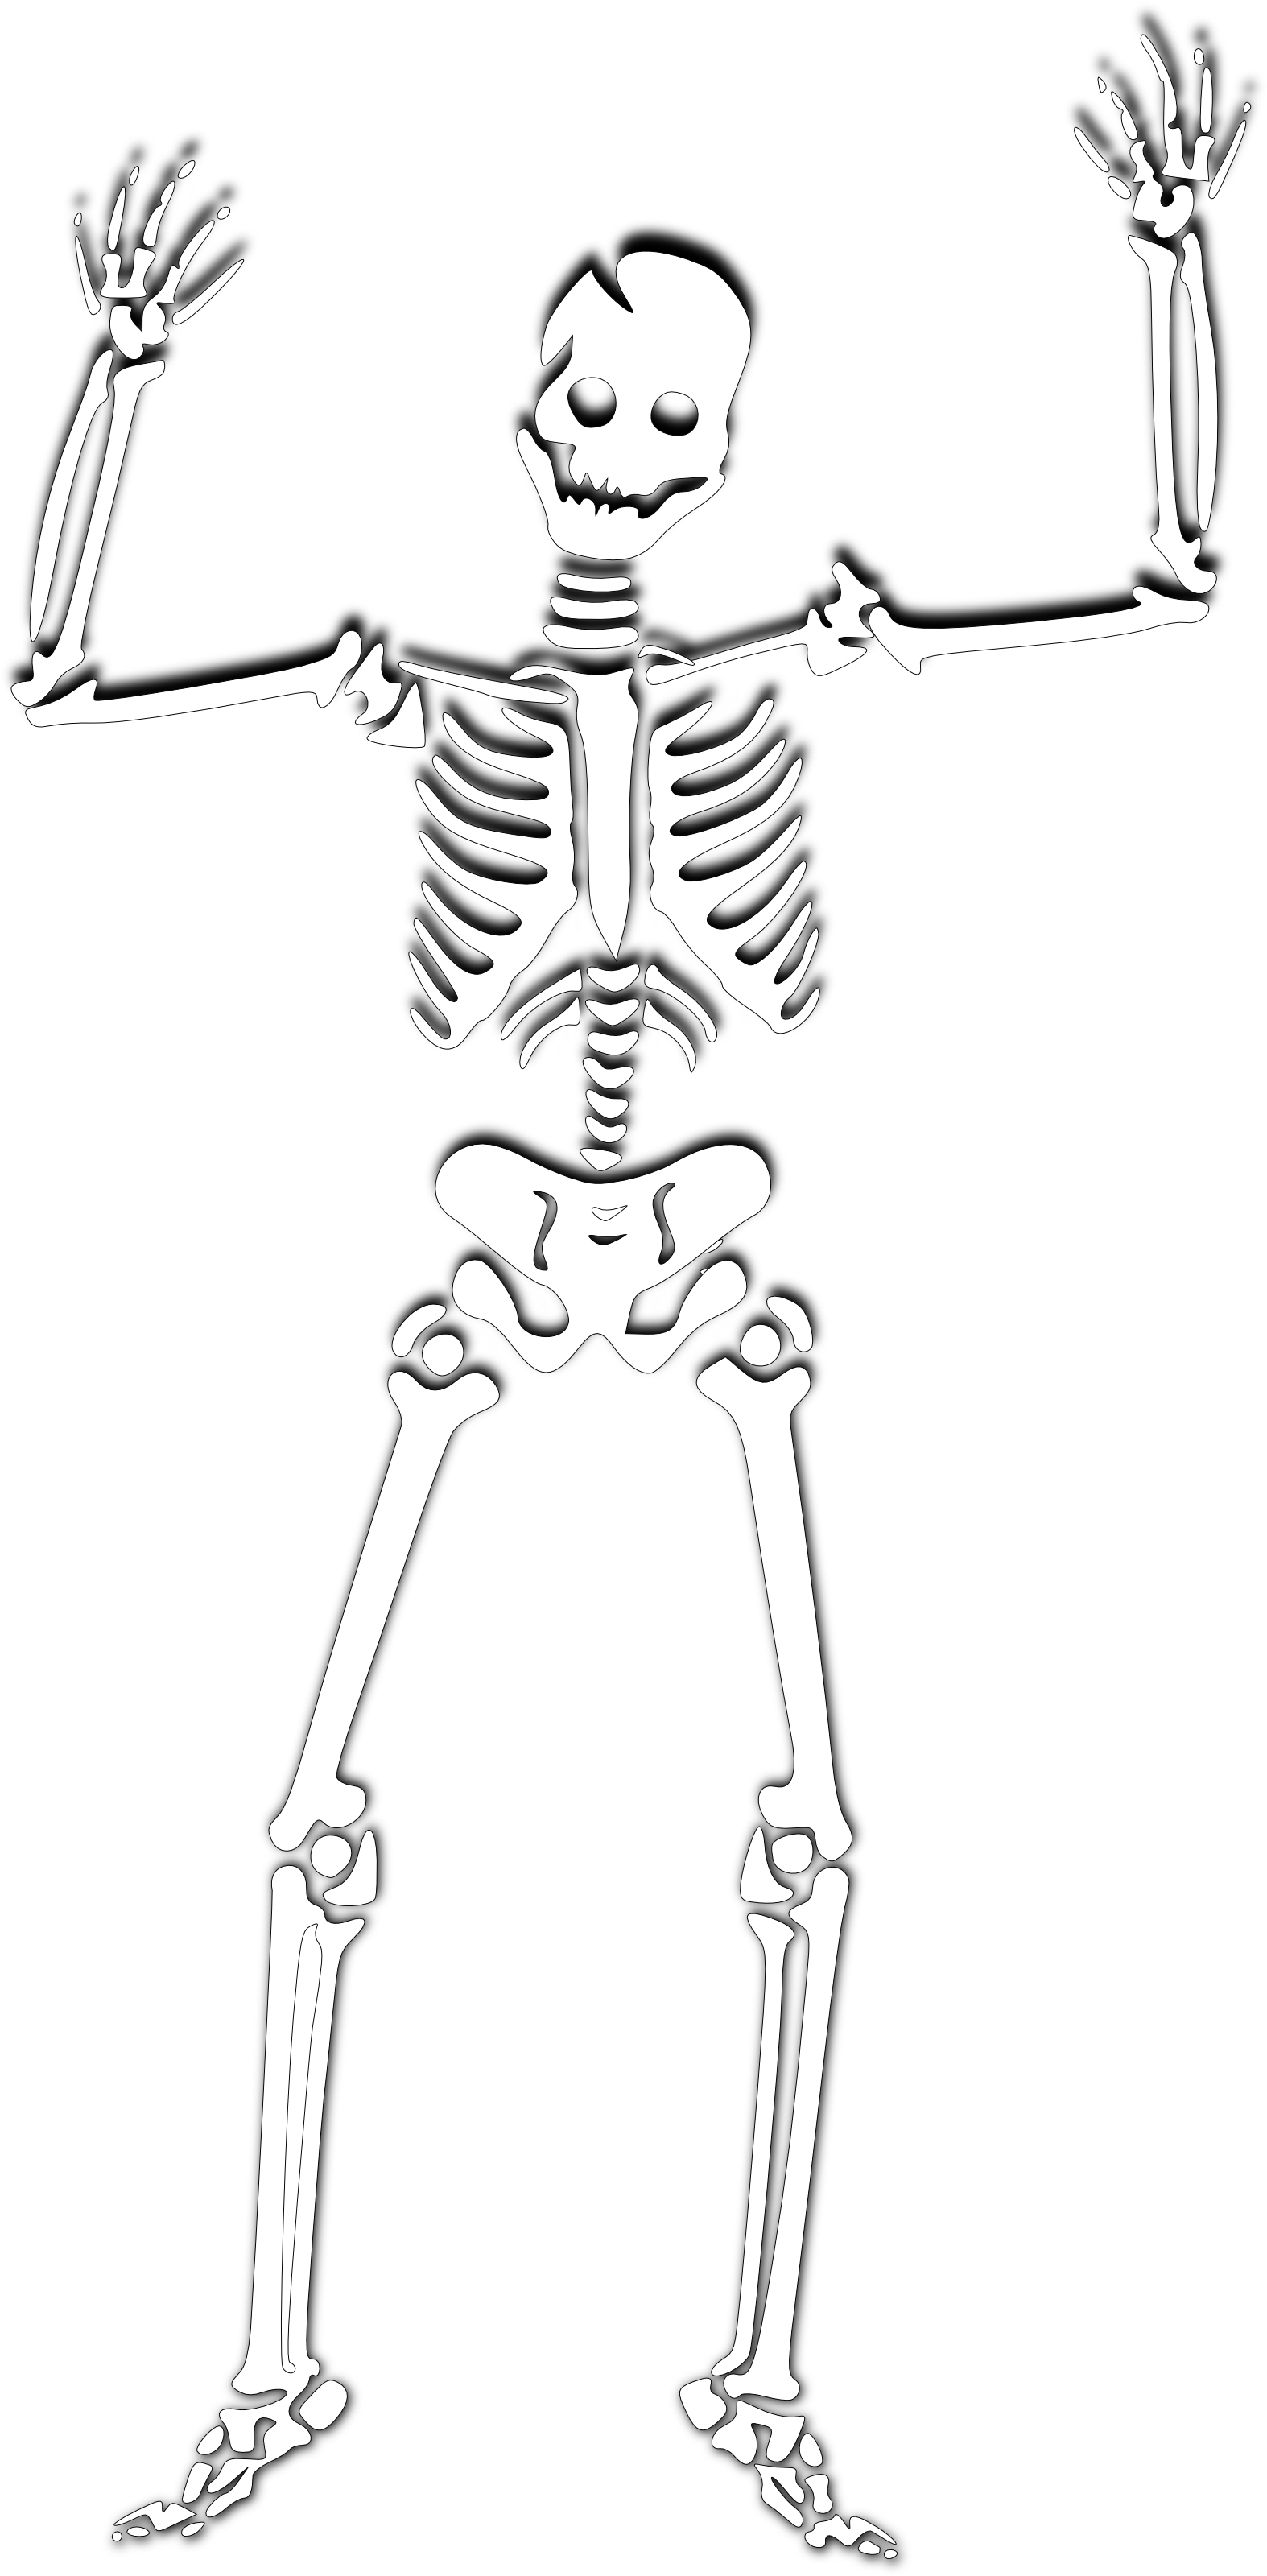 Skeleton - Free Halloween Clipart Illustration by 0001136